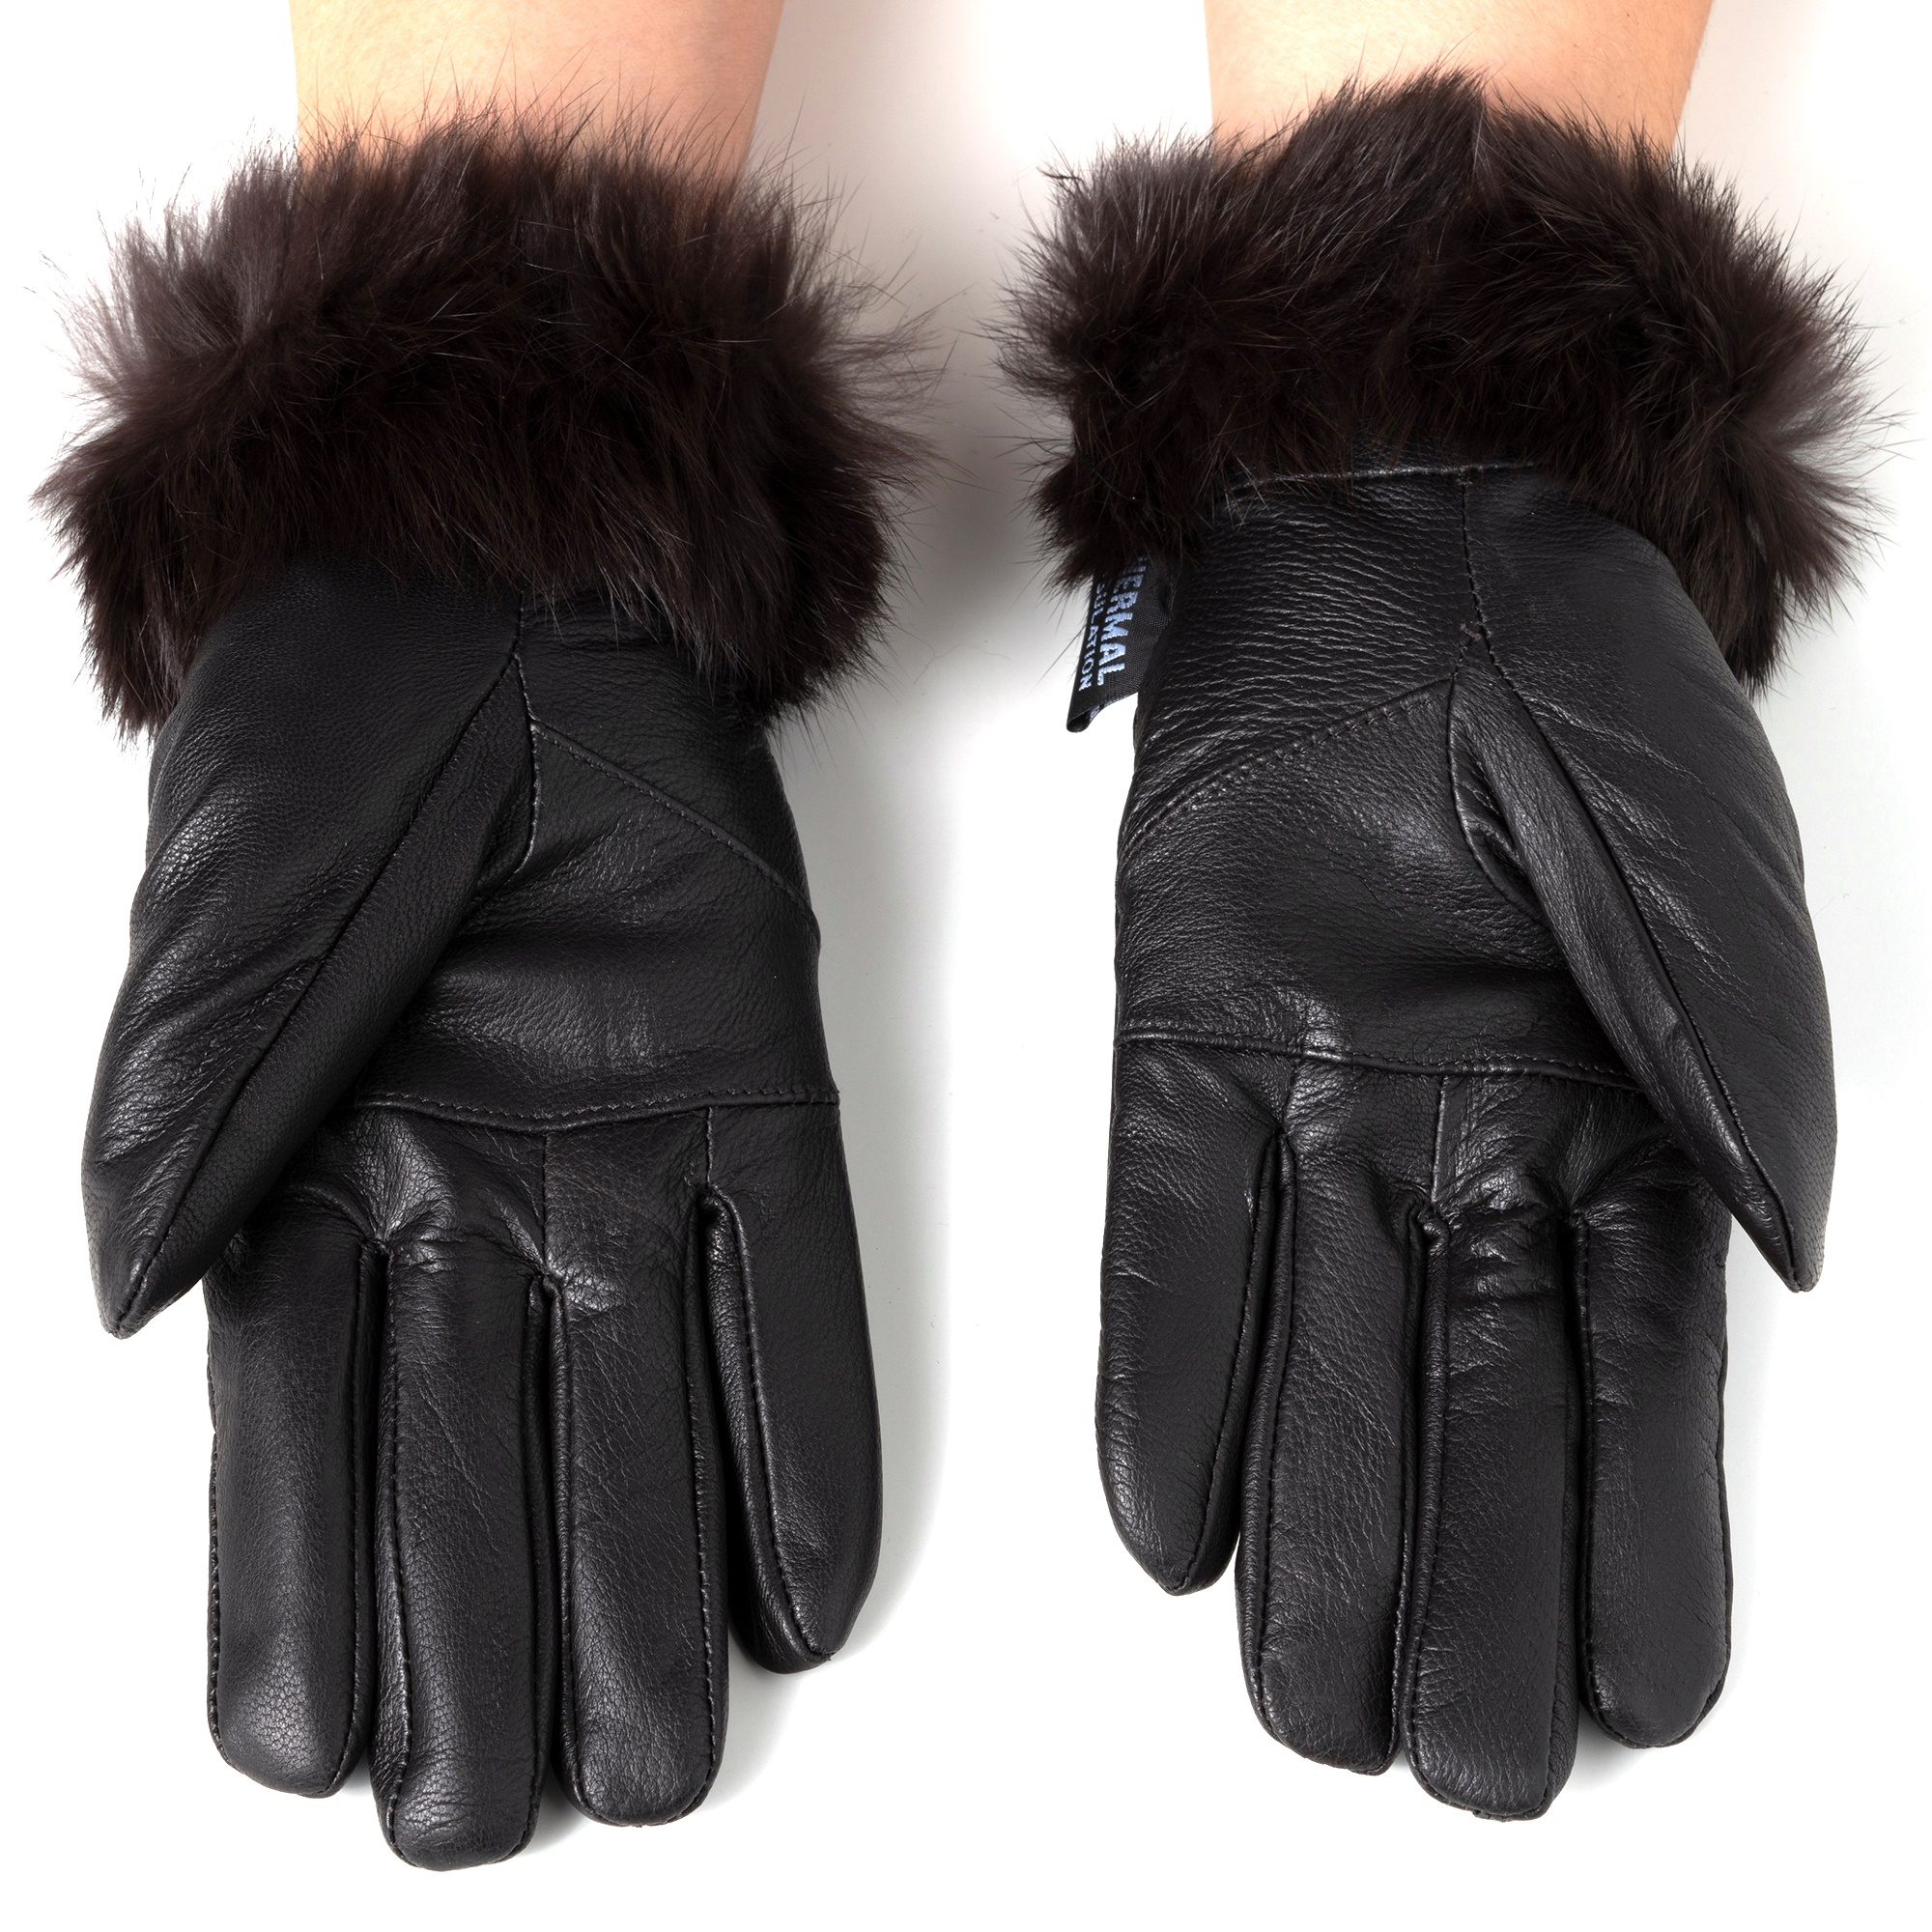 Alpine-Swiss-Womens-Dressy-Gloves-Genuine-Leather-Thermal-Lining-Fur-Trim-Cuff thumbnail 23